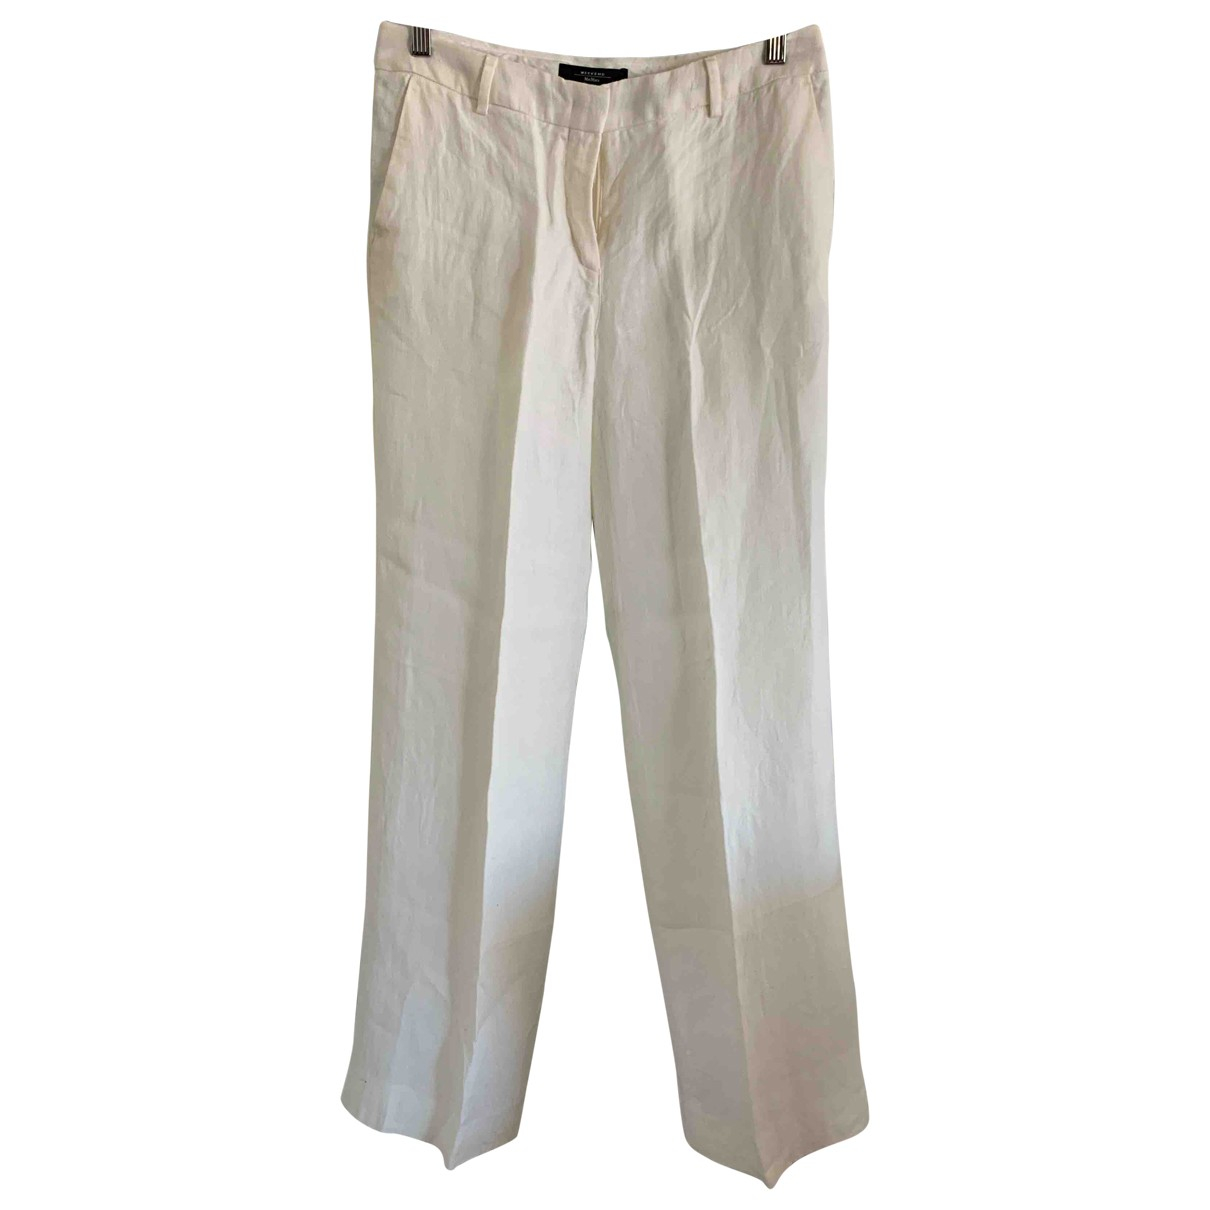 Pantalon largo de Lino Max Mara Weekend